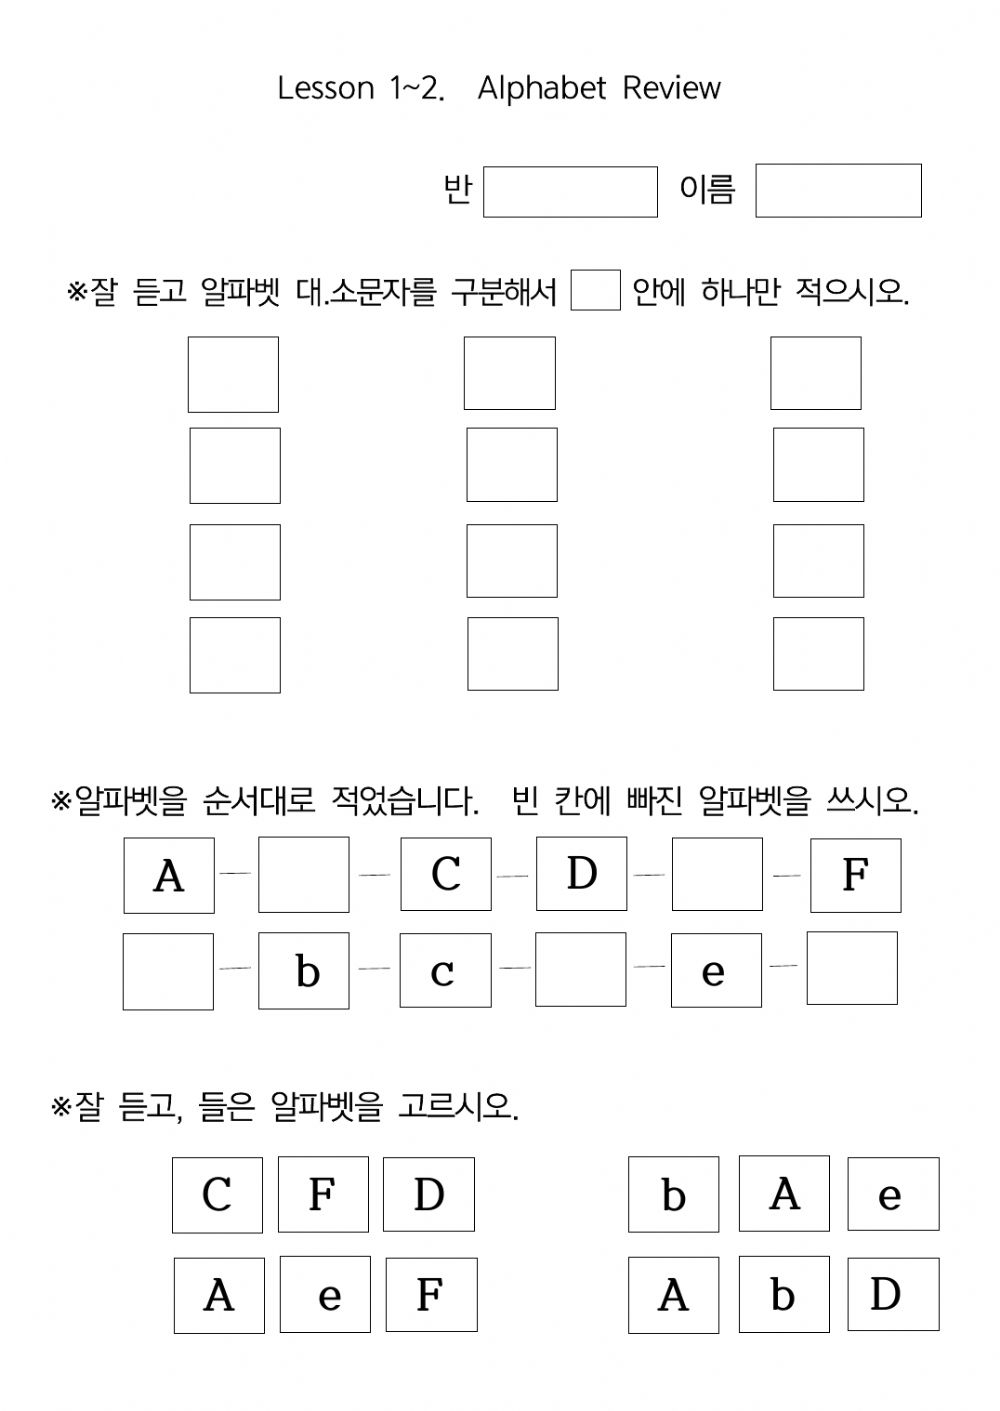 Grade 3 Lesson 1-2 Review 2 - Interactive Worksheet pertaining to Alphabet Worksheets Grade 3